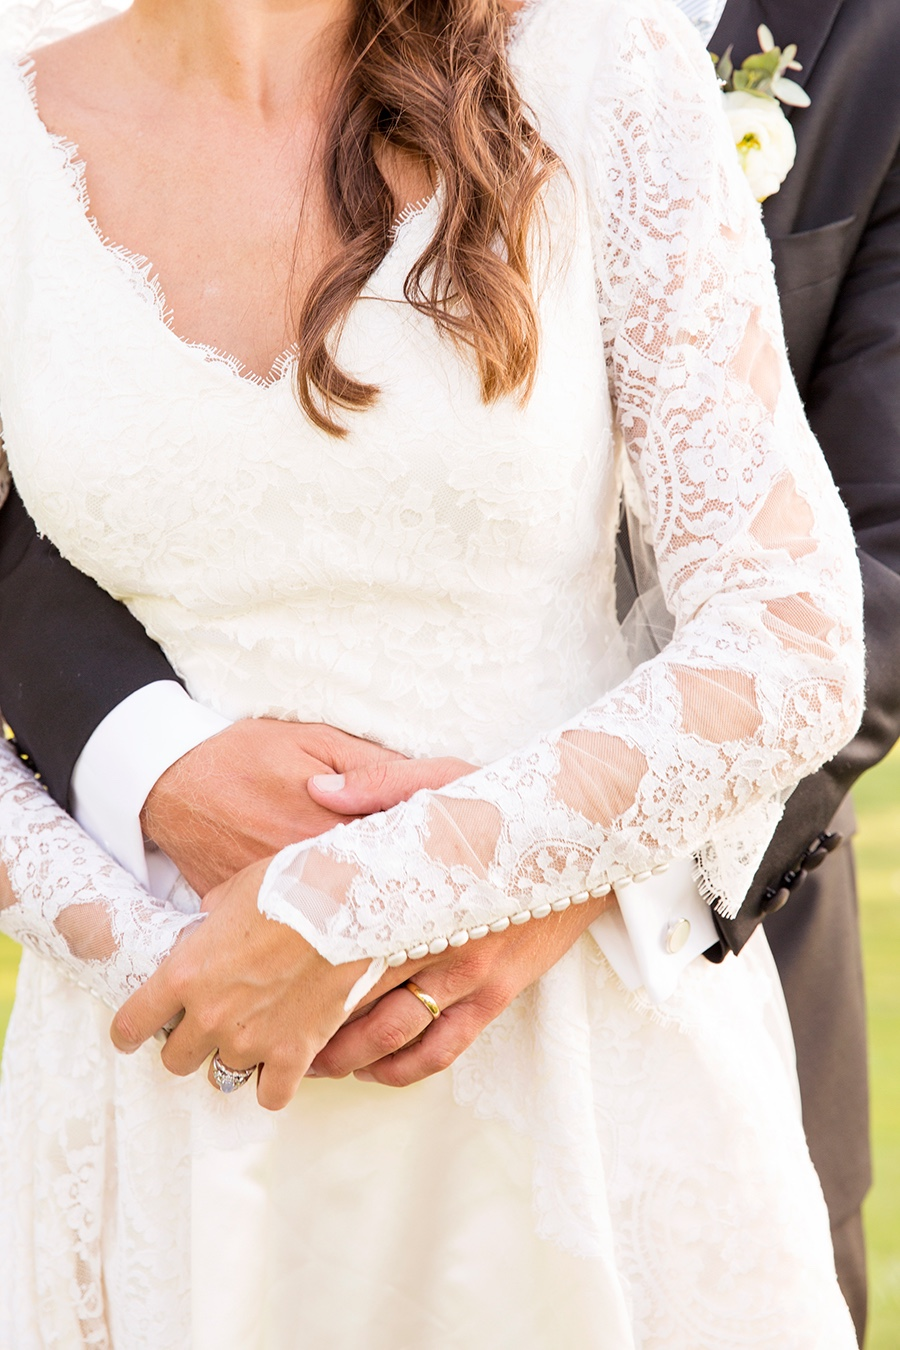 rebecca piersol traditional wedding lace sleeve detail